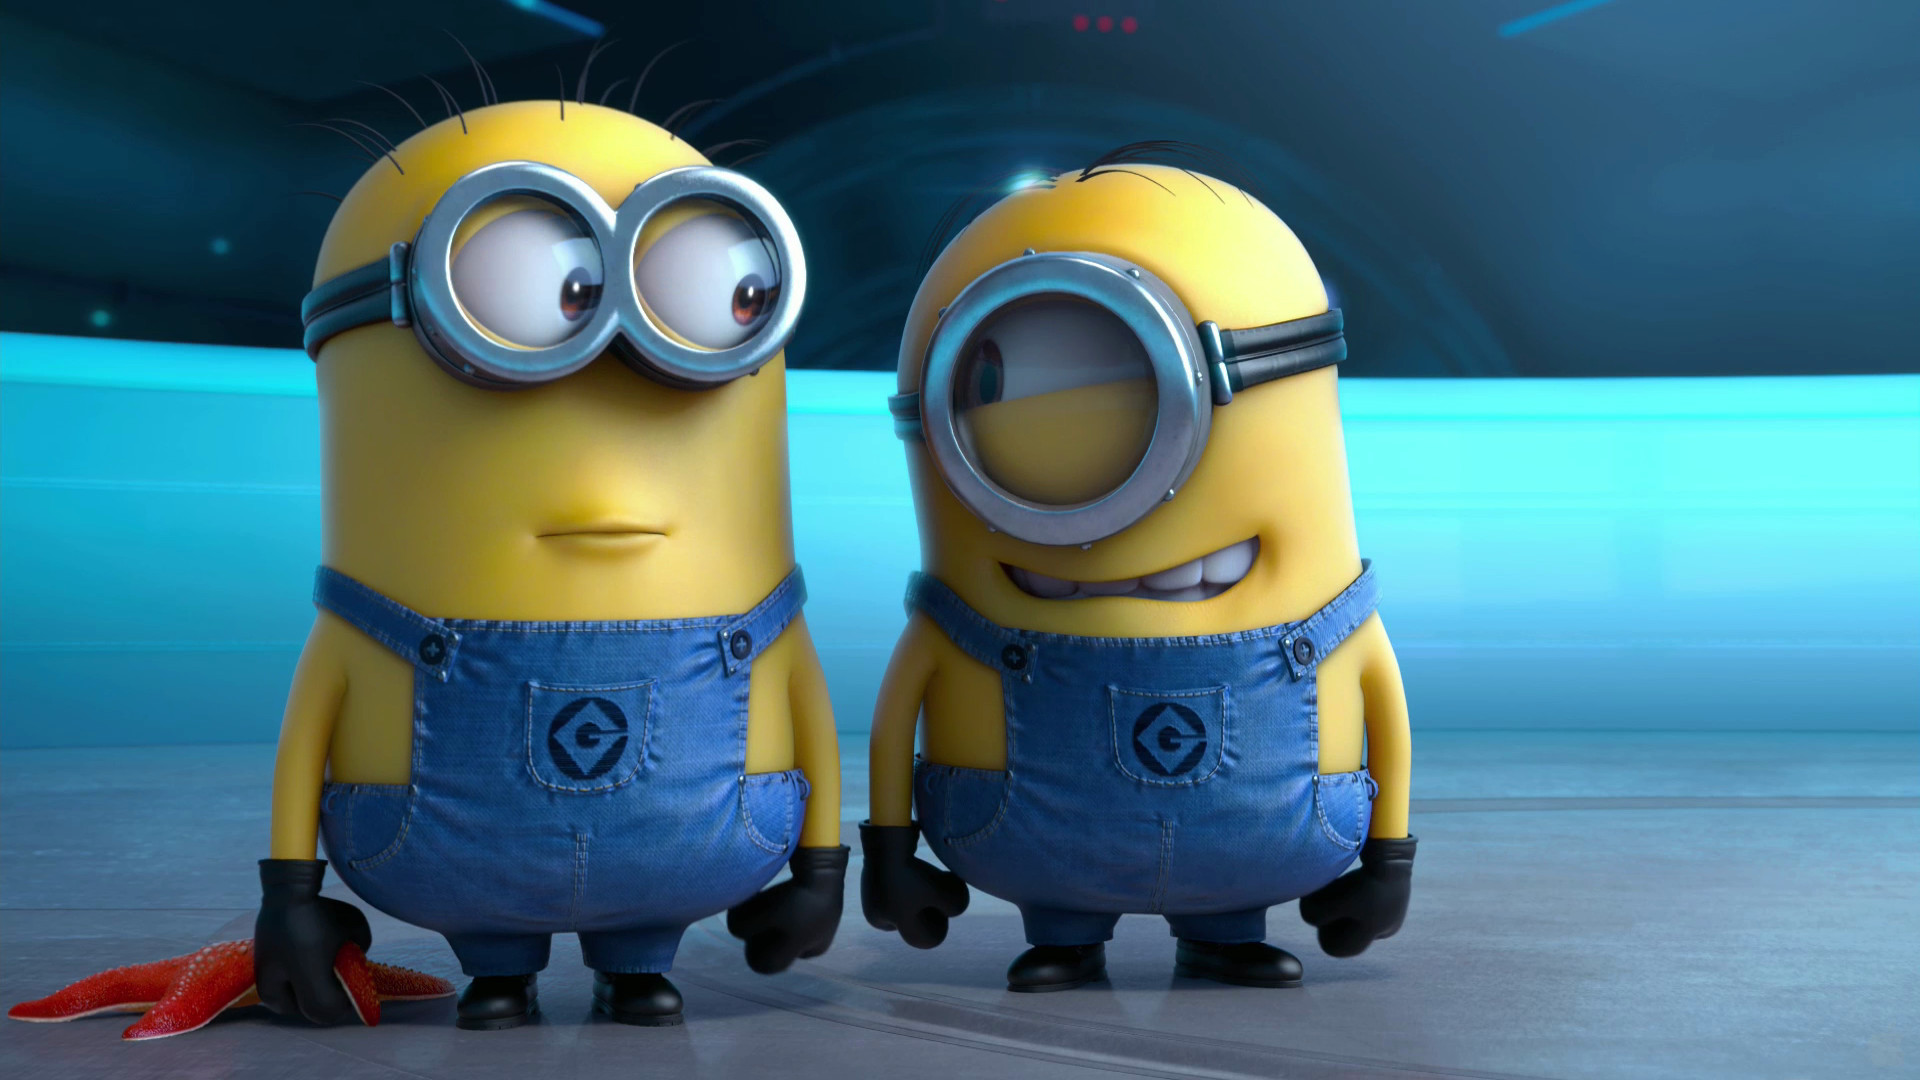 1920x1080 minion desktop wallpaper hd wallpapers